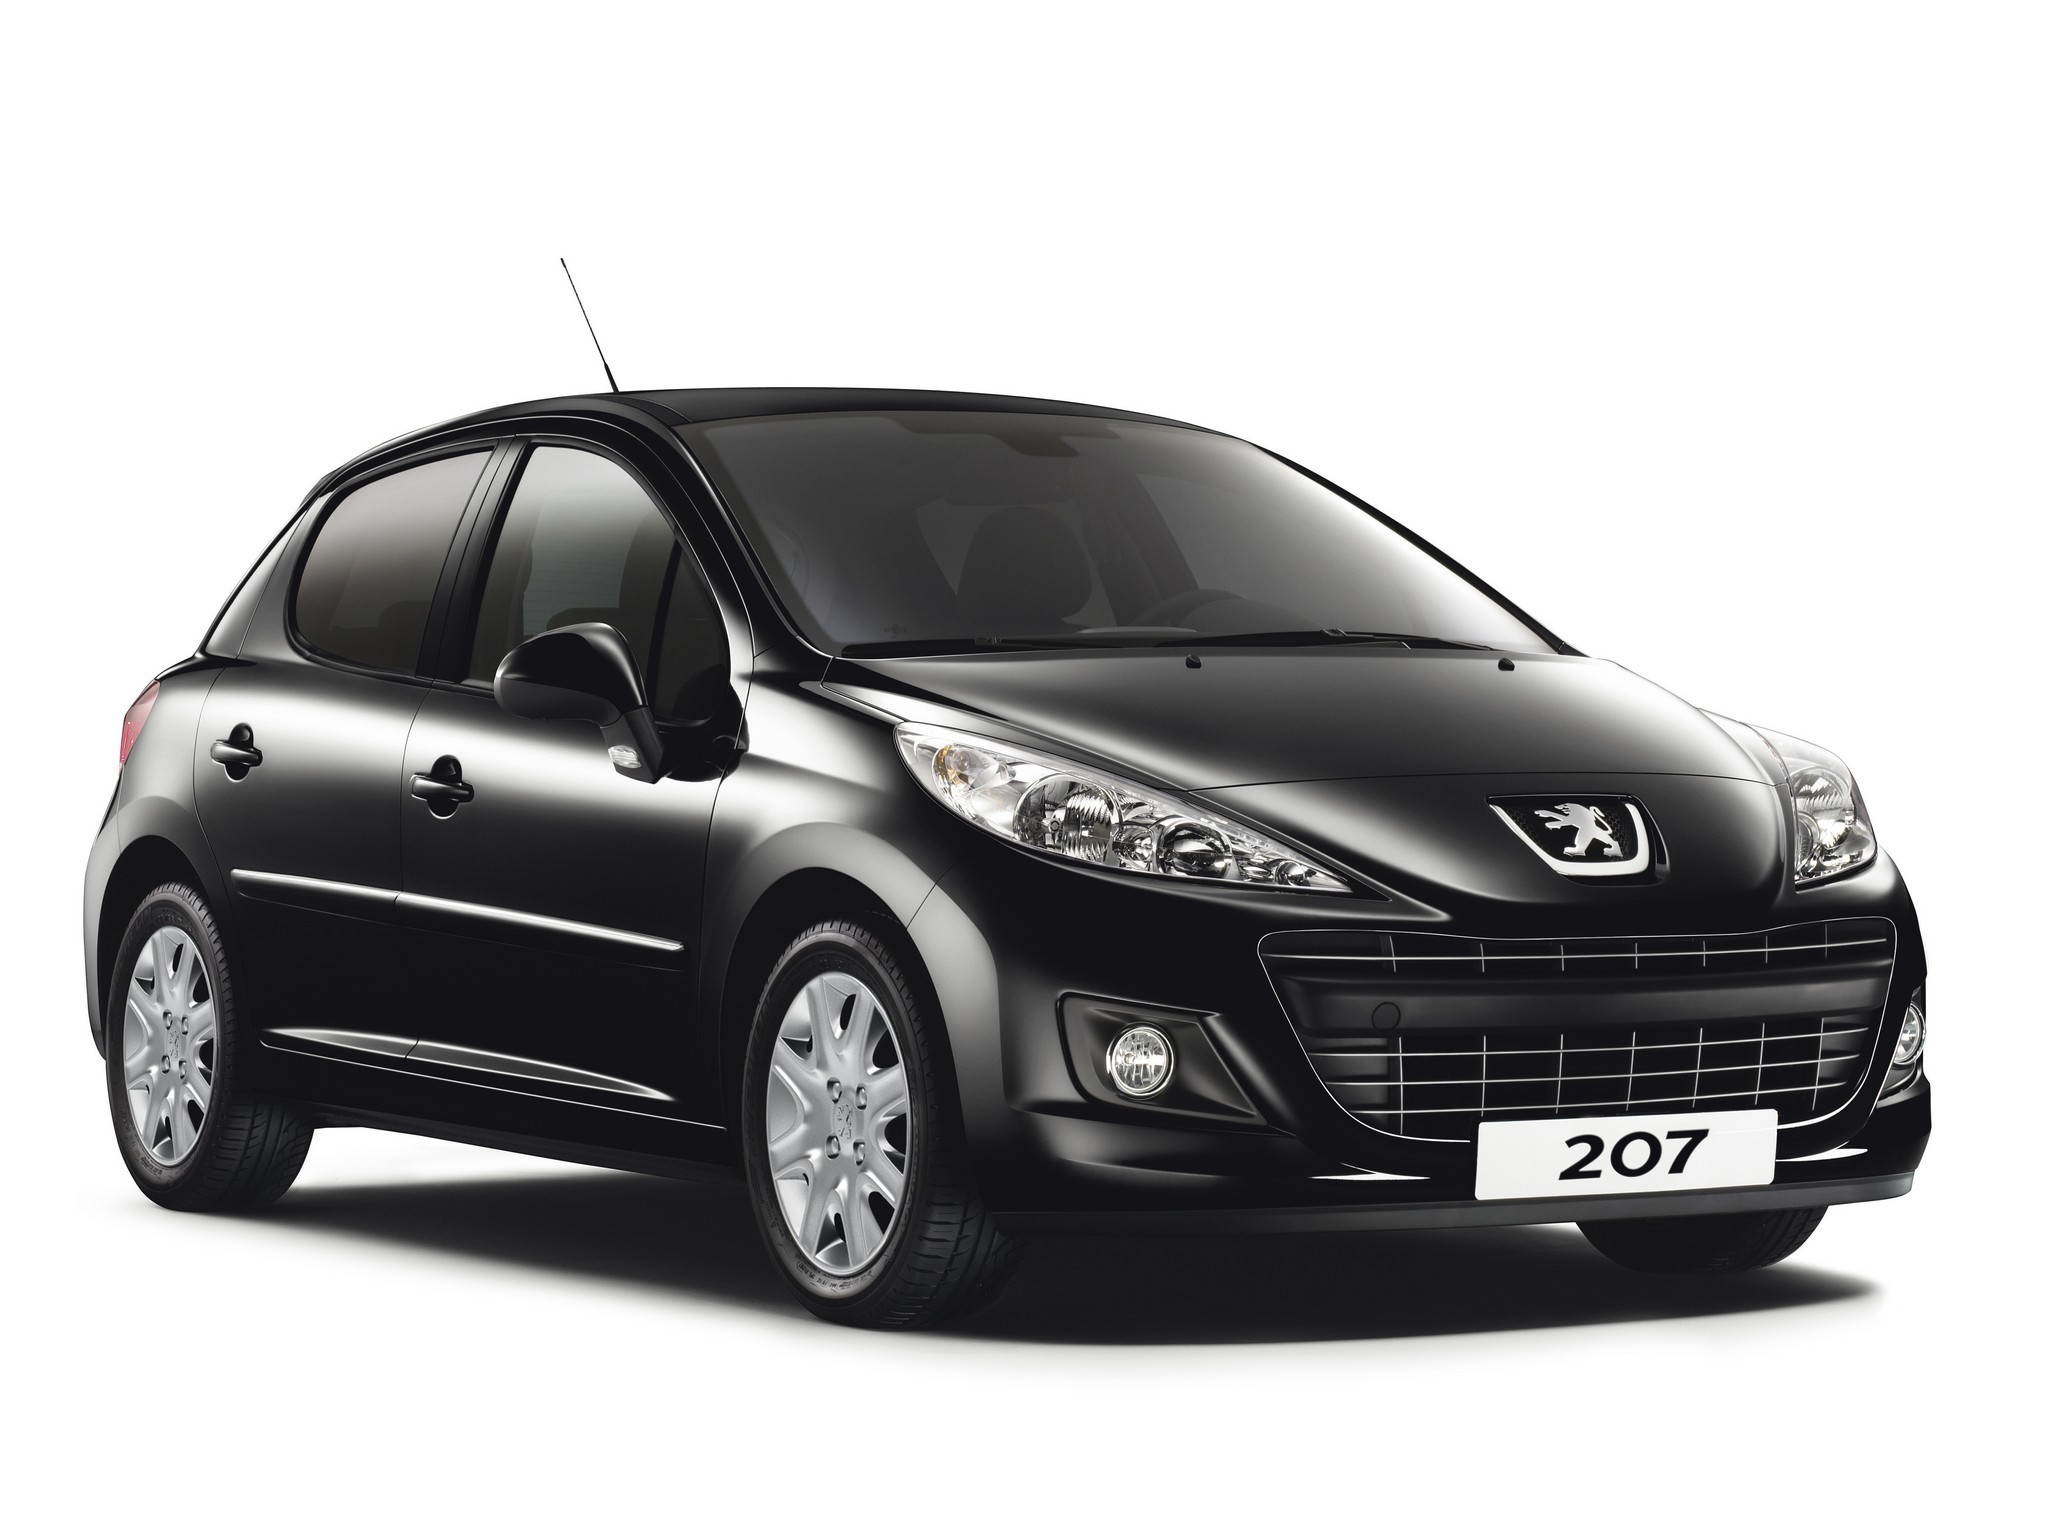 peugeot 207 5 doors specs 2009 2010 2011 2012 autoevolution. Black Bedroom Furniture Sets. Home Design Ideas